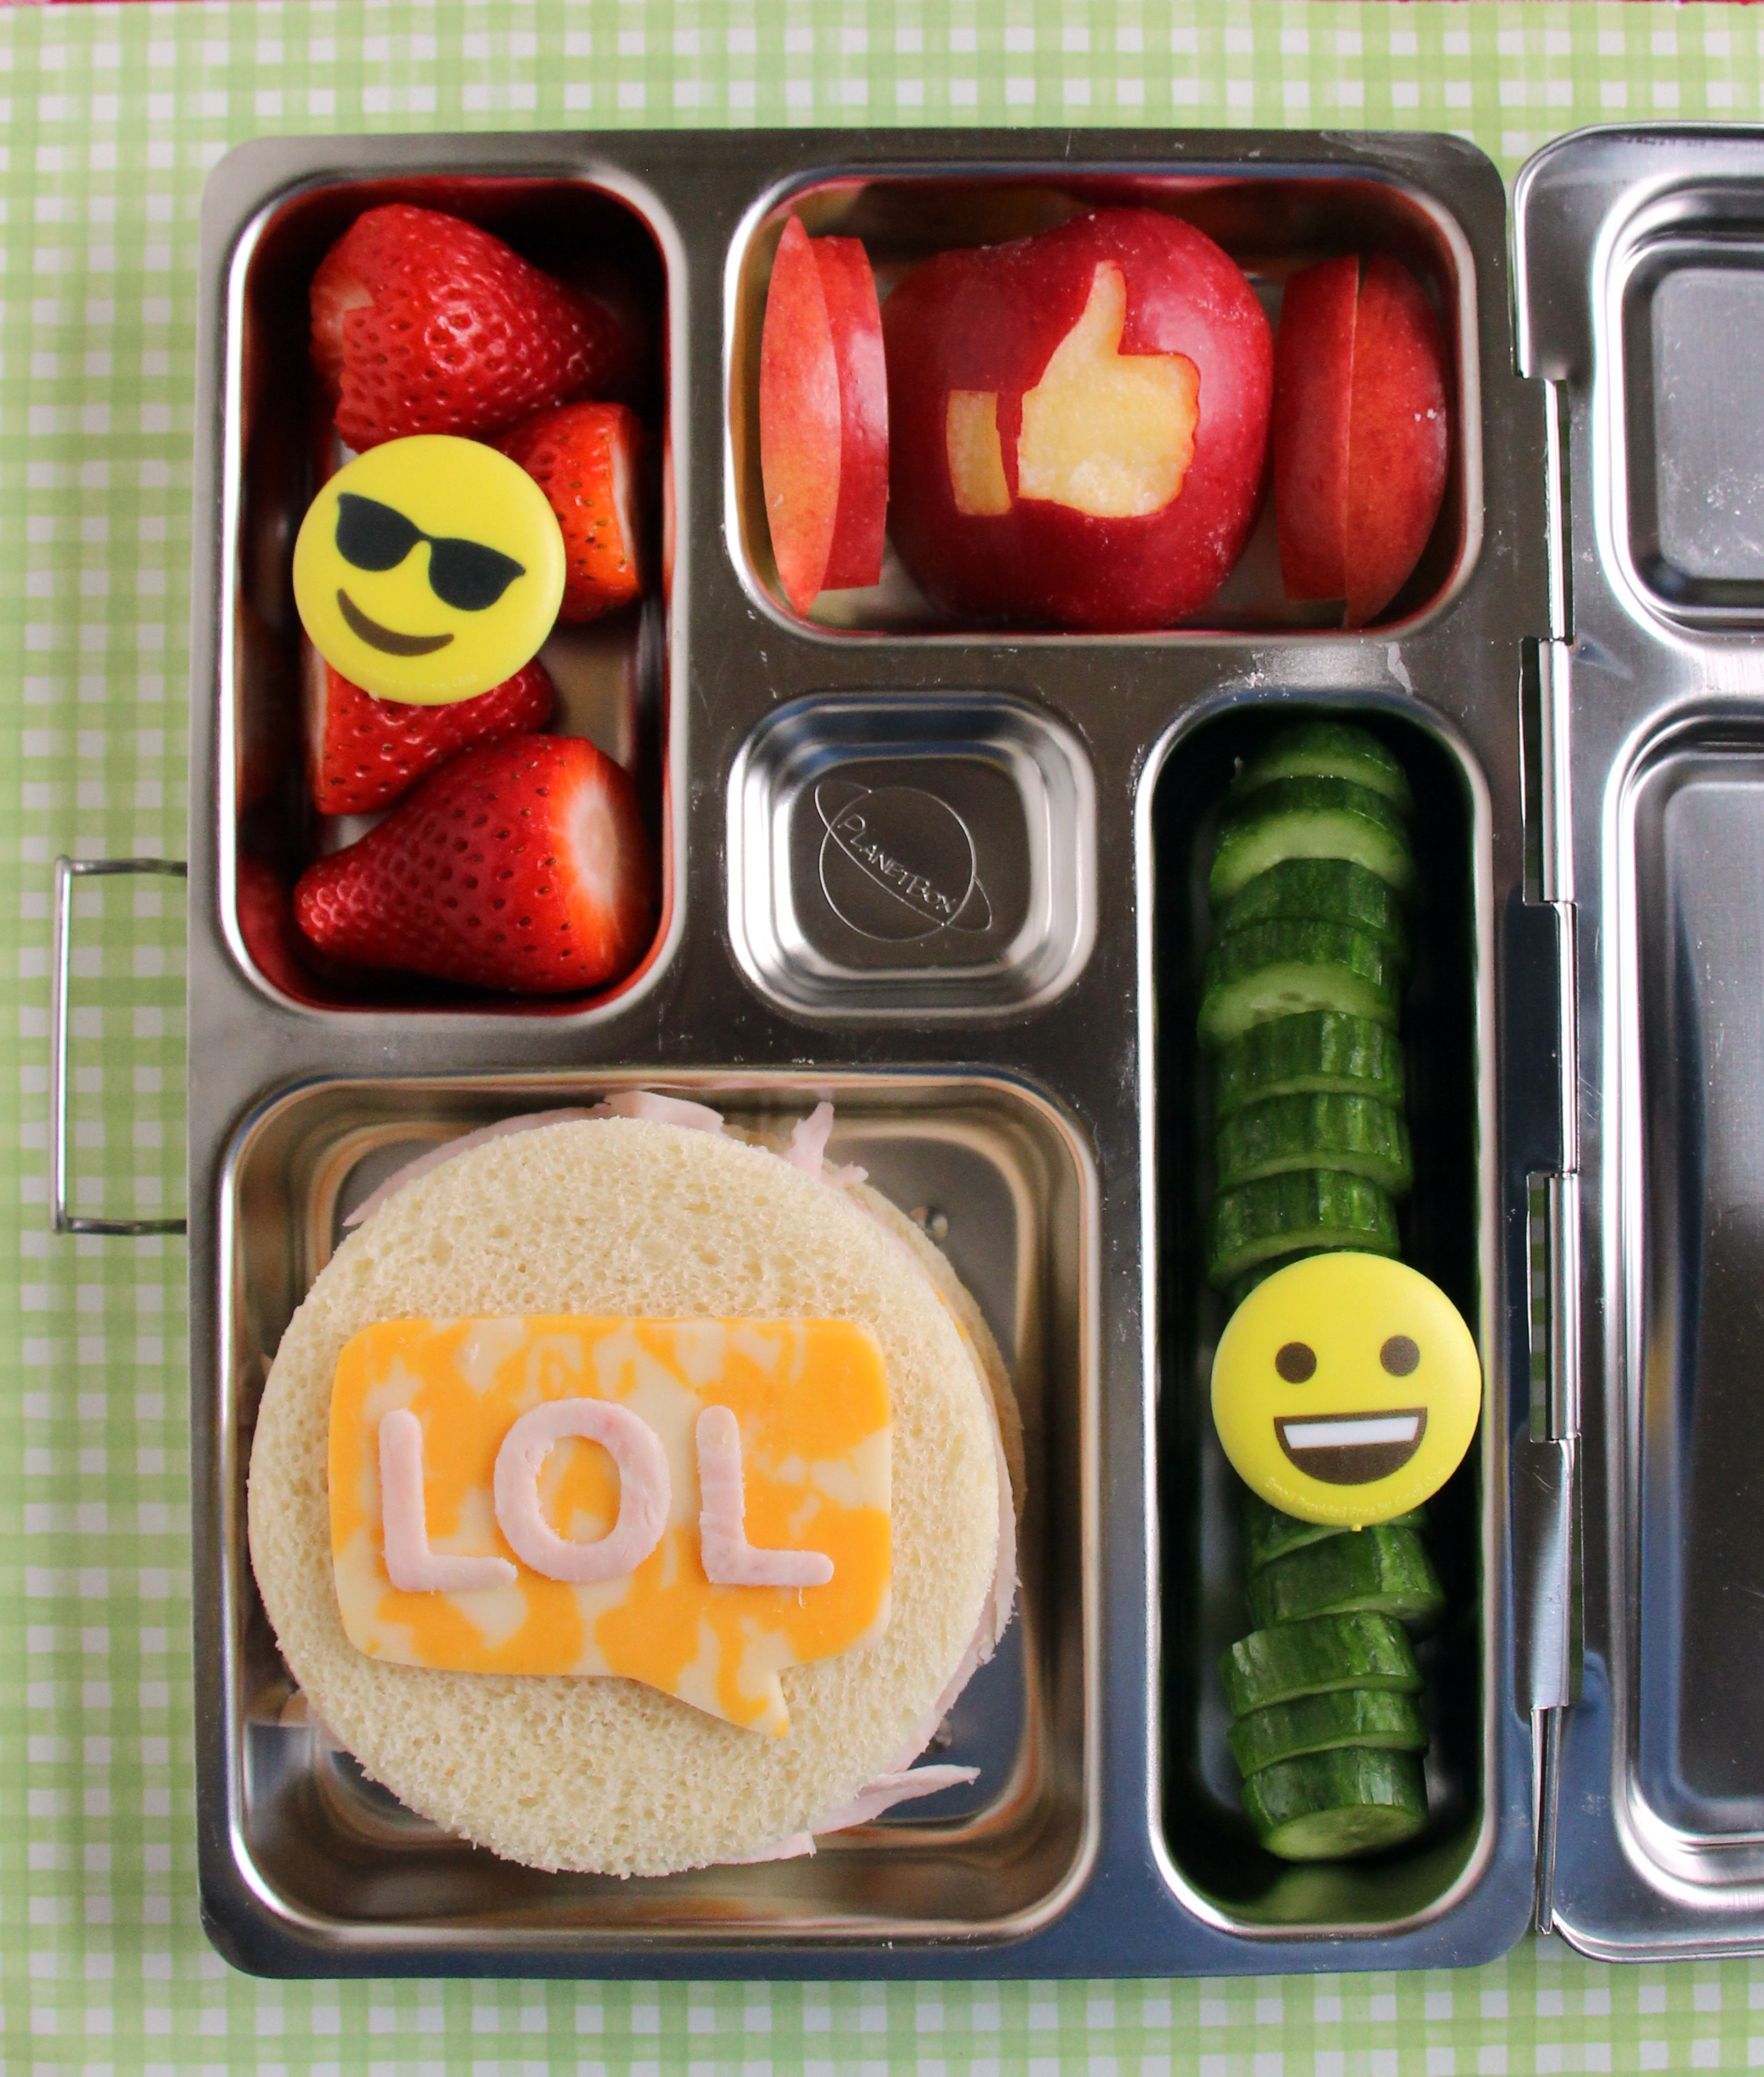 bento box emojis lol sandwich